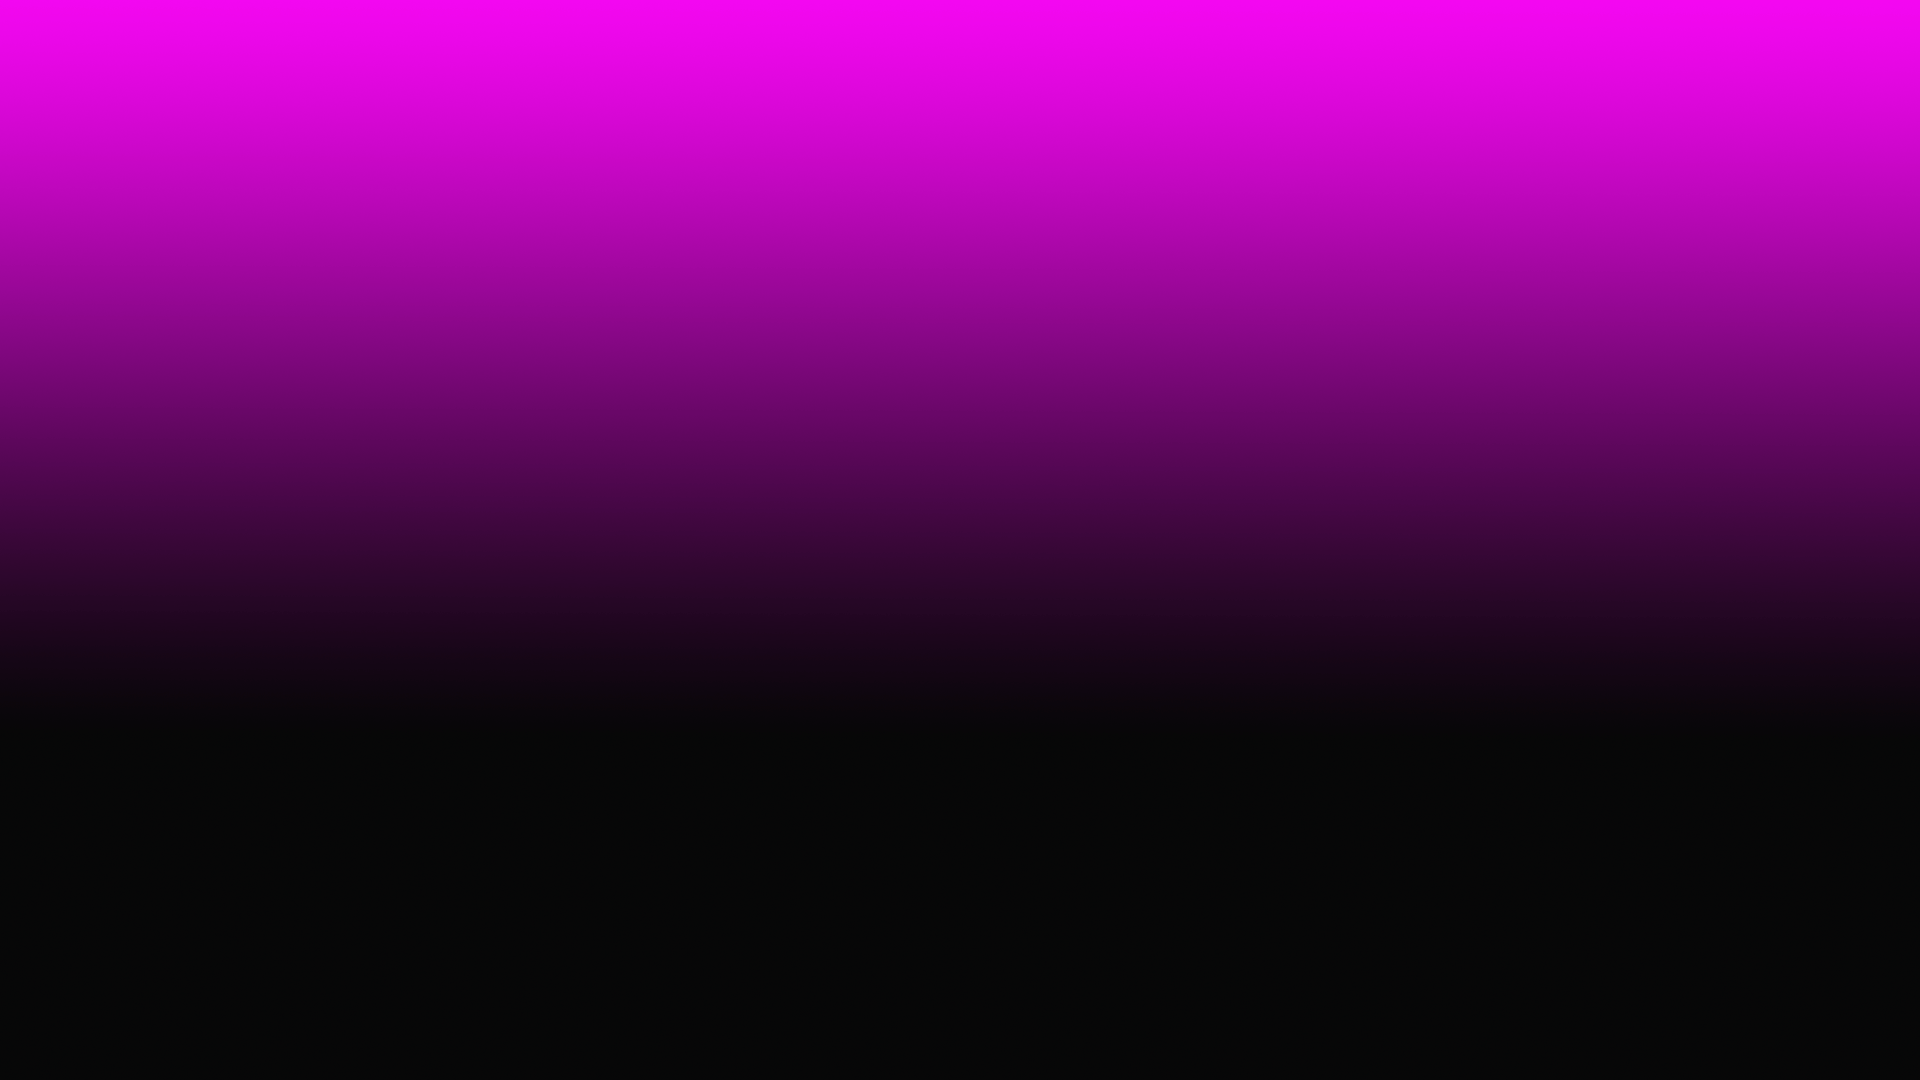 Pink Black Fading Gradient Desktop Wallpaper